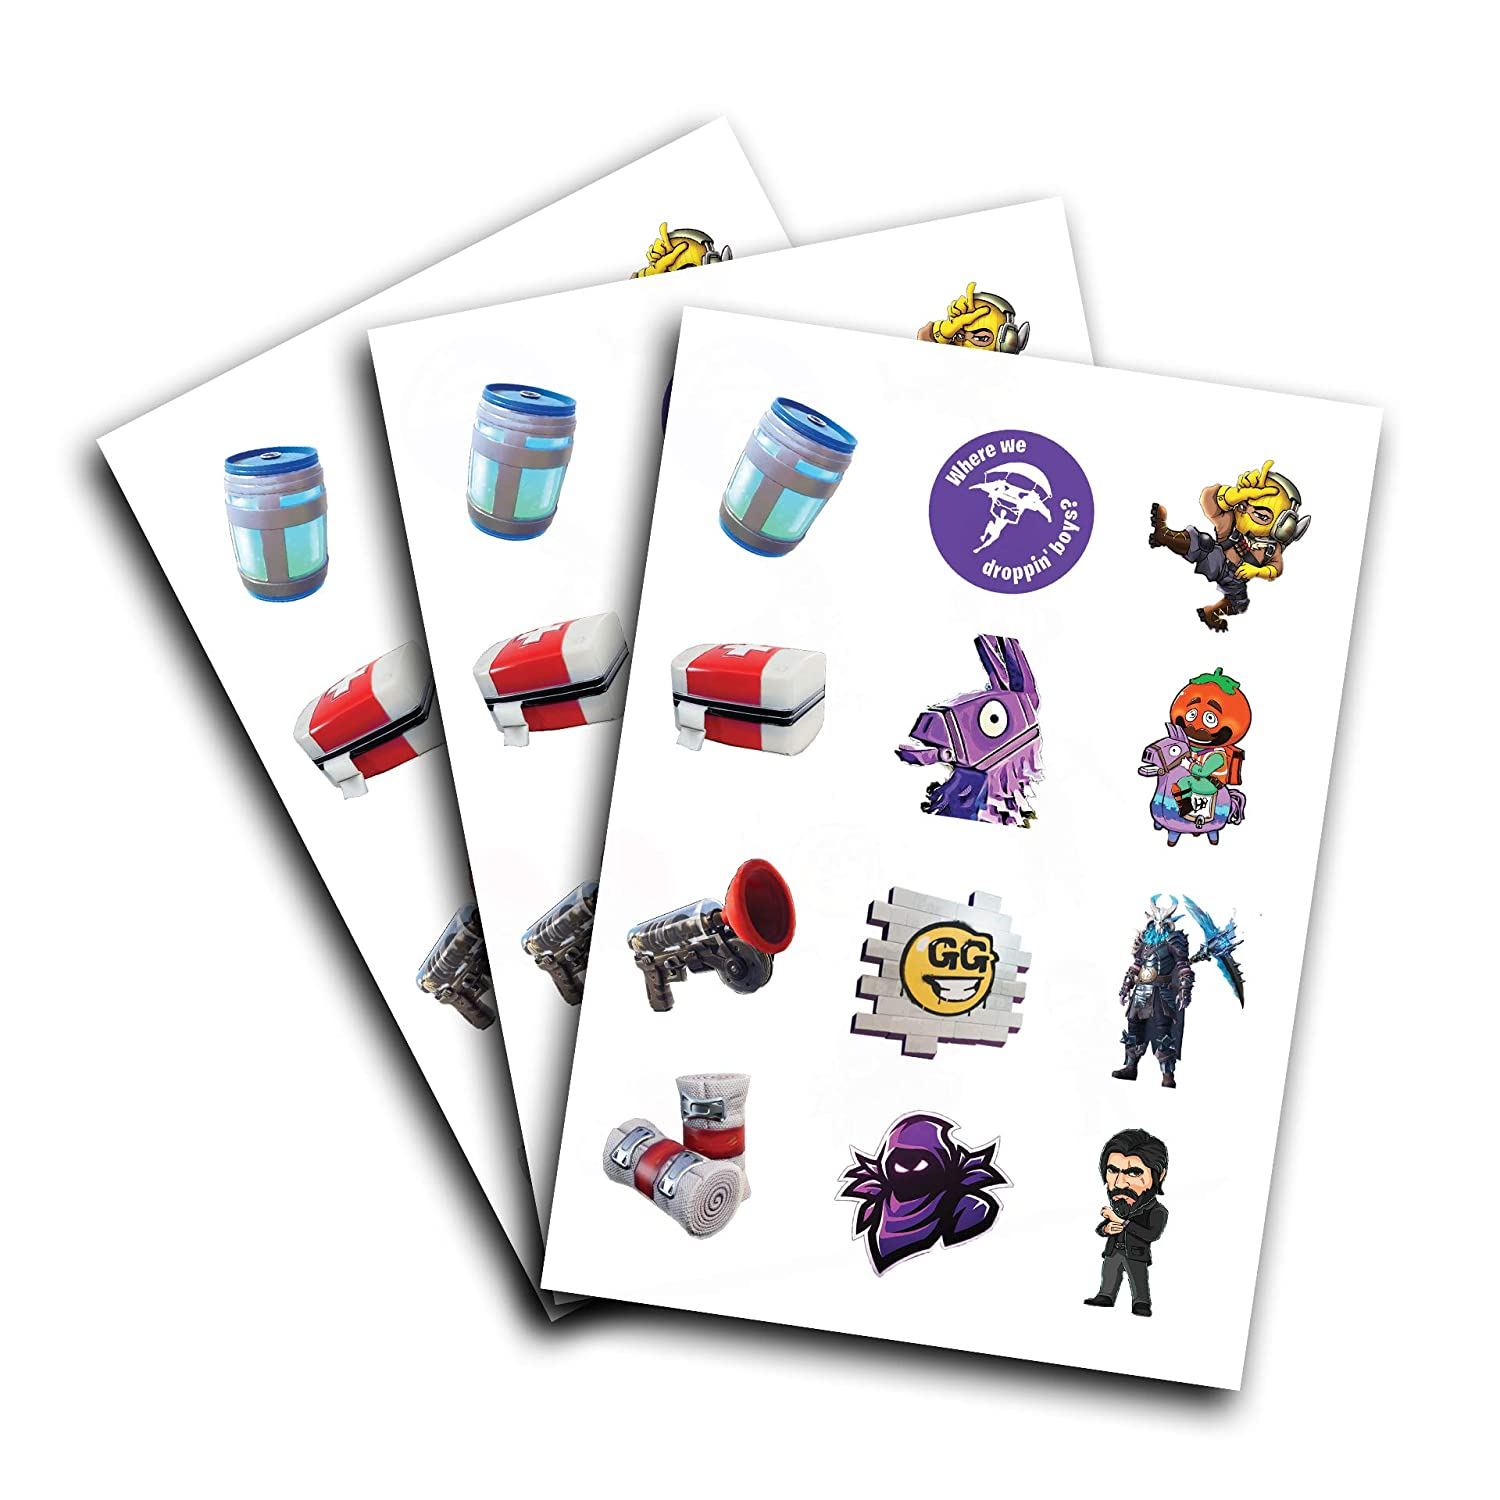 3 Sheets of Fortnite Characters Kids Temporary Tattoos | Fortnite Video Game Characters | Easy to Use | Safe | Durable | Tattoos for Children | Multiple Designs | Non-toxic | Kids Tattoos (Version 1) Desk Island